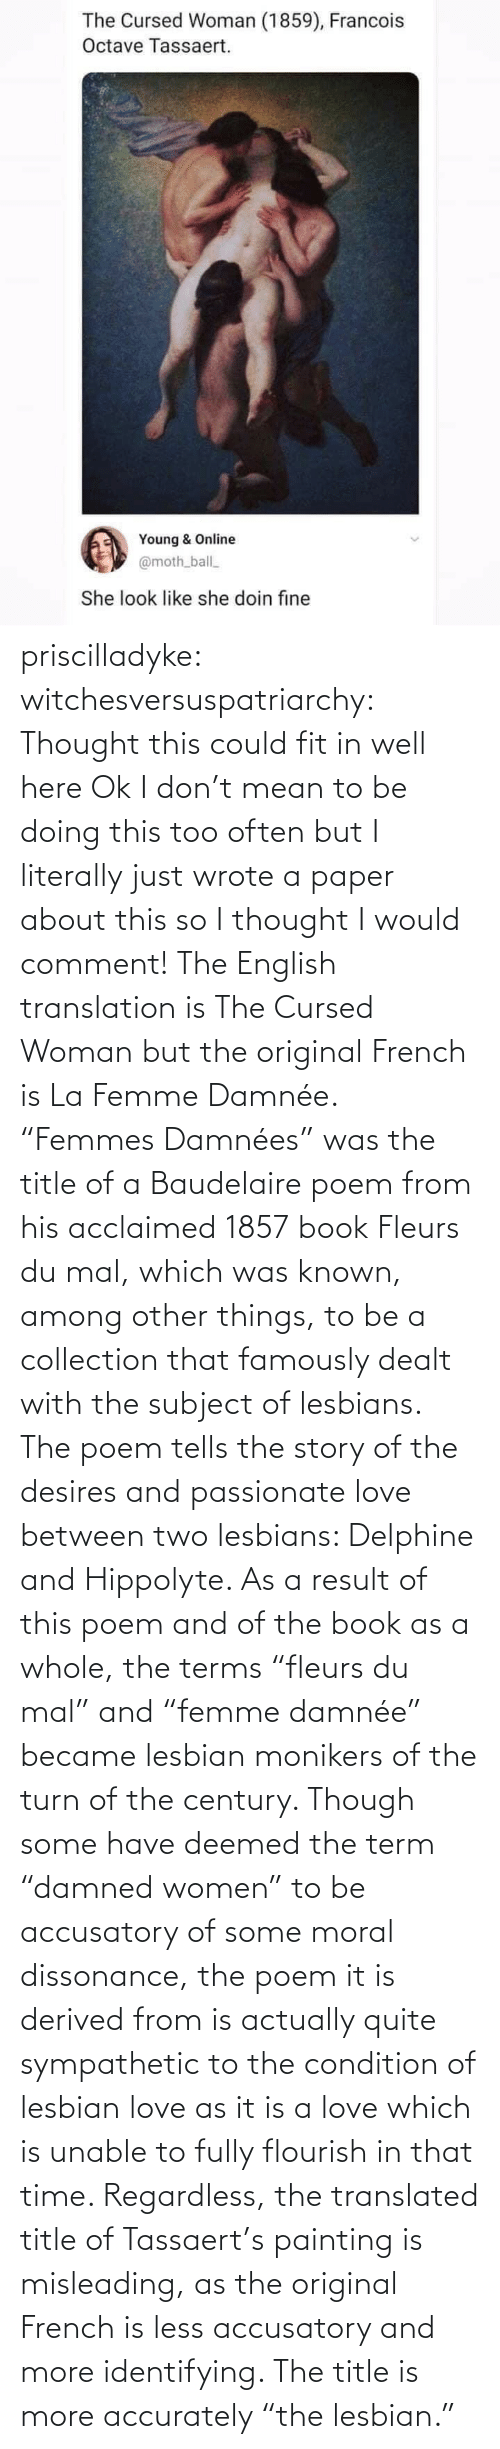 "As It Is: priscilladyke:  witchesversuspatriarchy: Thought this could fit in well here   Ok I don't mean to be doing this too often but I literally just wrote a paper about this so I thought I would comment! The English translation is The Cursed Woman but the original French is La Femme Damnée. ""Femmes Damnées"" was the title of a Baudelaire poem from his acclaimed 1857 book Fleurs du mal, which was known, among other things, to be a collection that famously dealt with the subject of lesbians. The poem tells the story of the desires and passionate love between two lesbians:  Delphine and Hippolyte. As a result of this poem and of the book as a whole, the terms ""fleurs du mal"" and ""femme damnée"" became lesbian monikers of the turn of the century. Though some have deemed the term ""damned women"" to be accusatory of some moral dissonance, the poem it is derived from is actually quite sympathetic to the condition of lesbian love as it is a love which is unable to fully flourish in that time. Regardless, the translated title of Tassaert's painting is misleading, as the original French is less accusatory and more identifying. The title is more accurately ""the lesbian."""